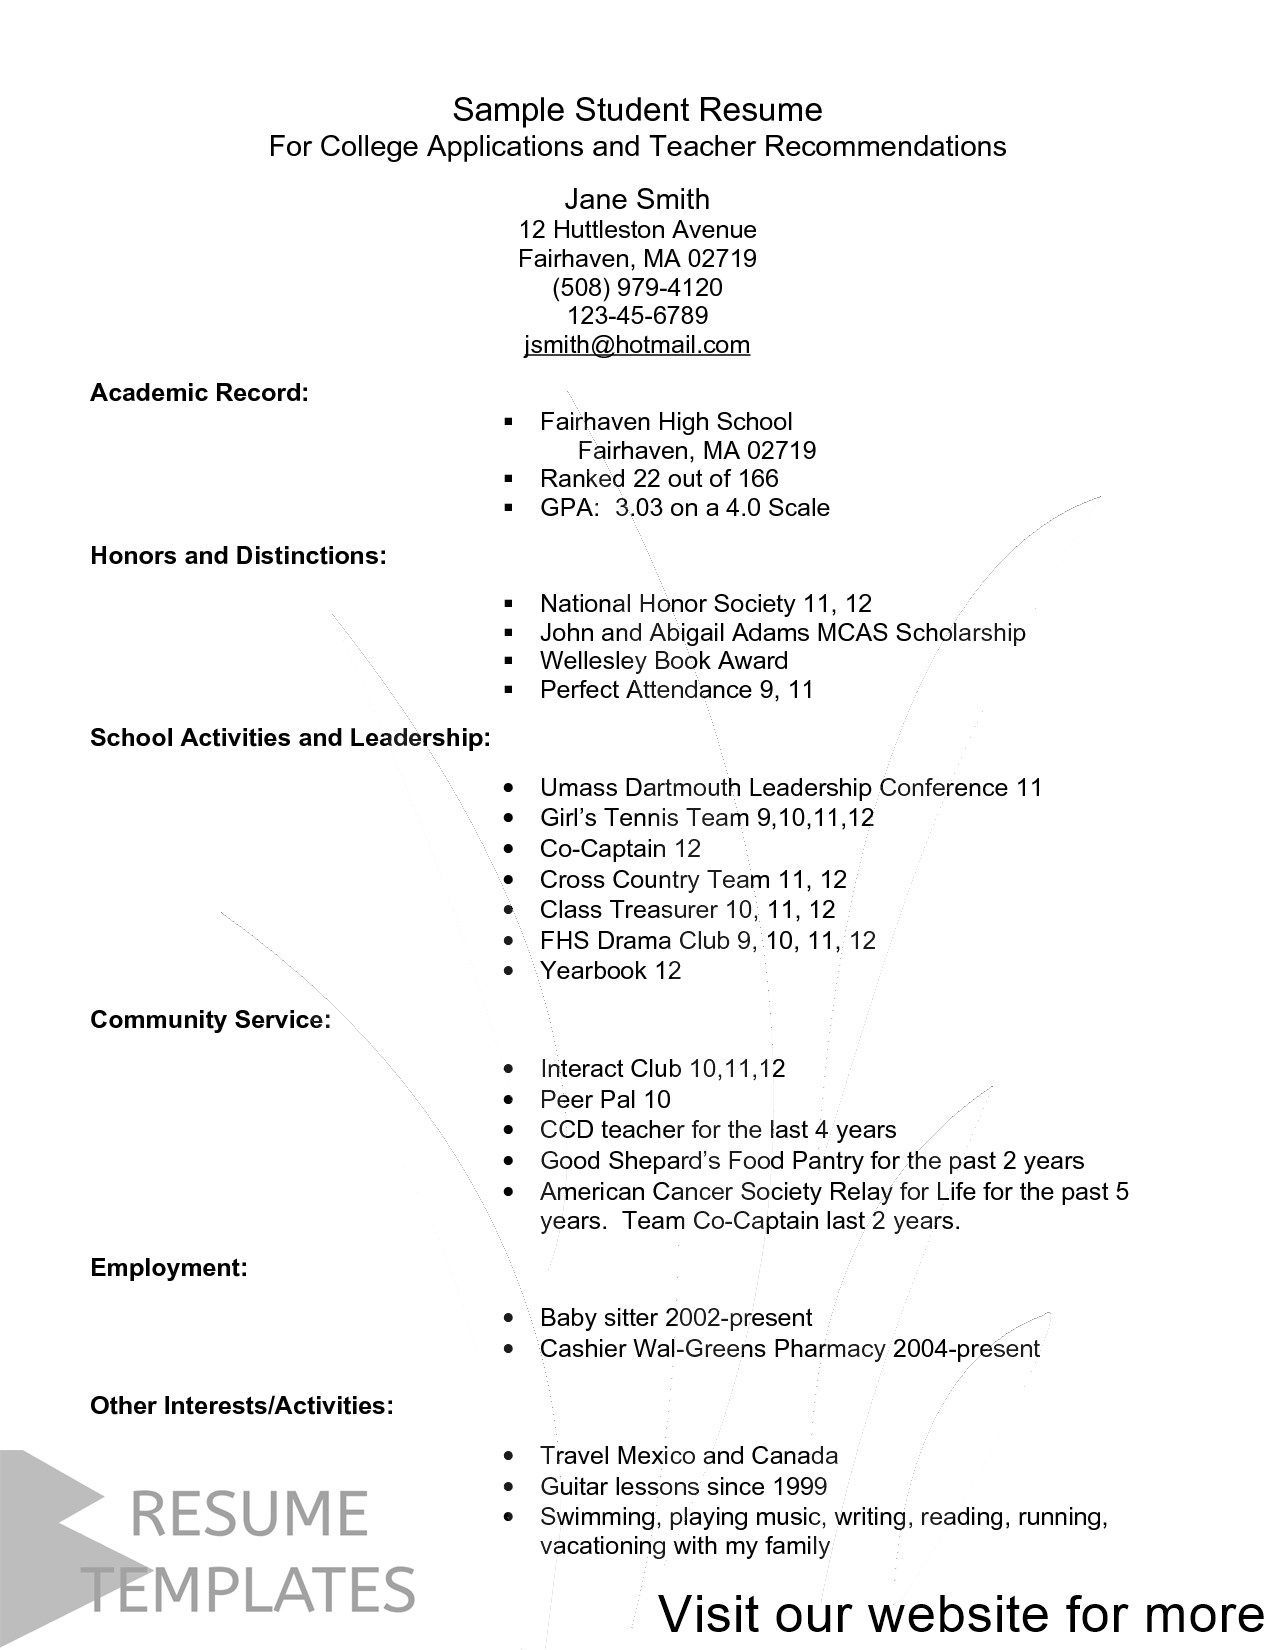 Resume Template Design Free Download Resume Template Professional Free Resume Template Desig In 2020 Resume Design Template Resume Template Free Resume Template